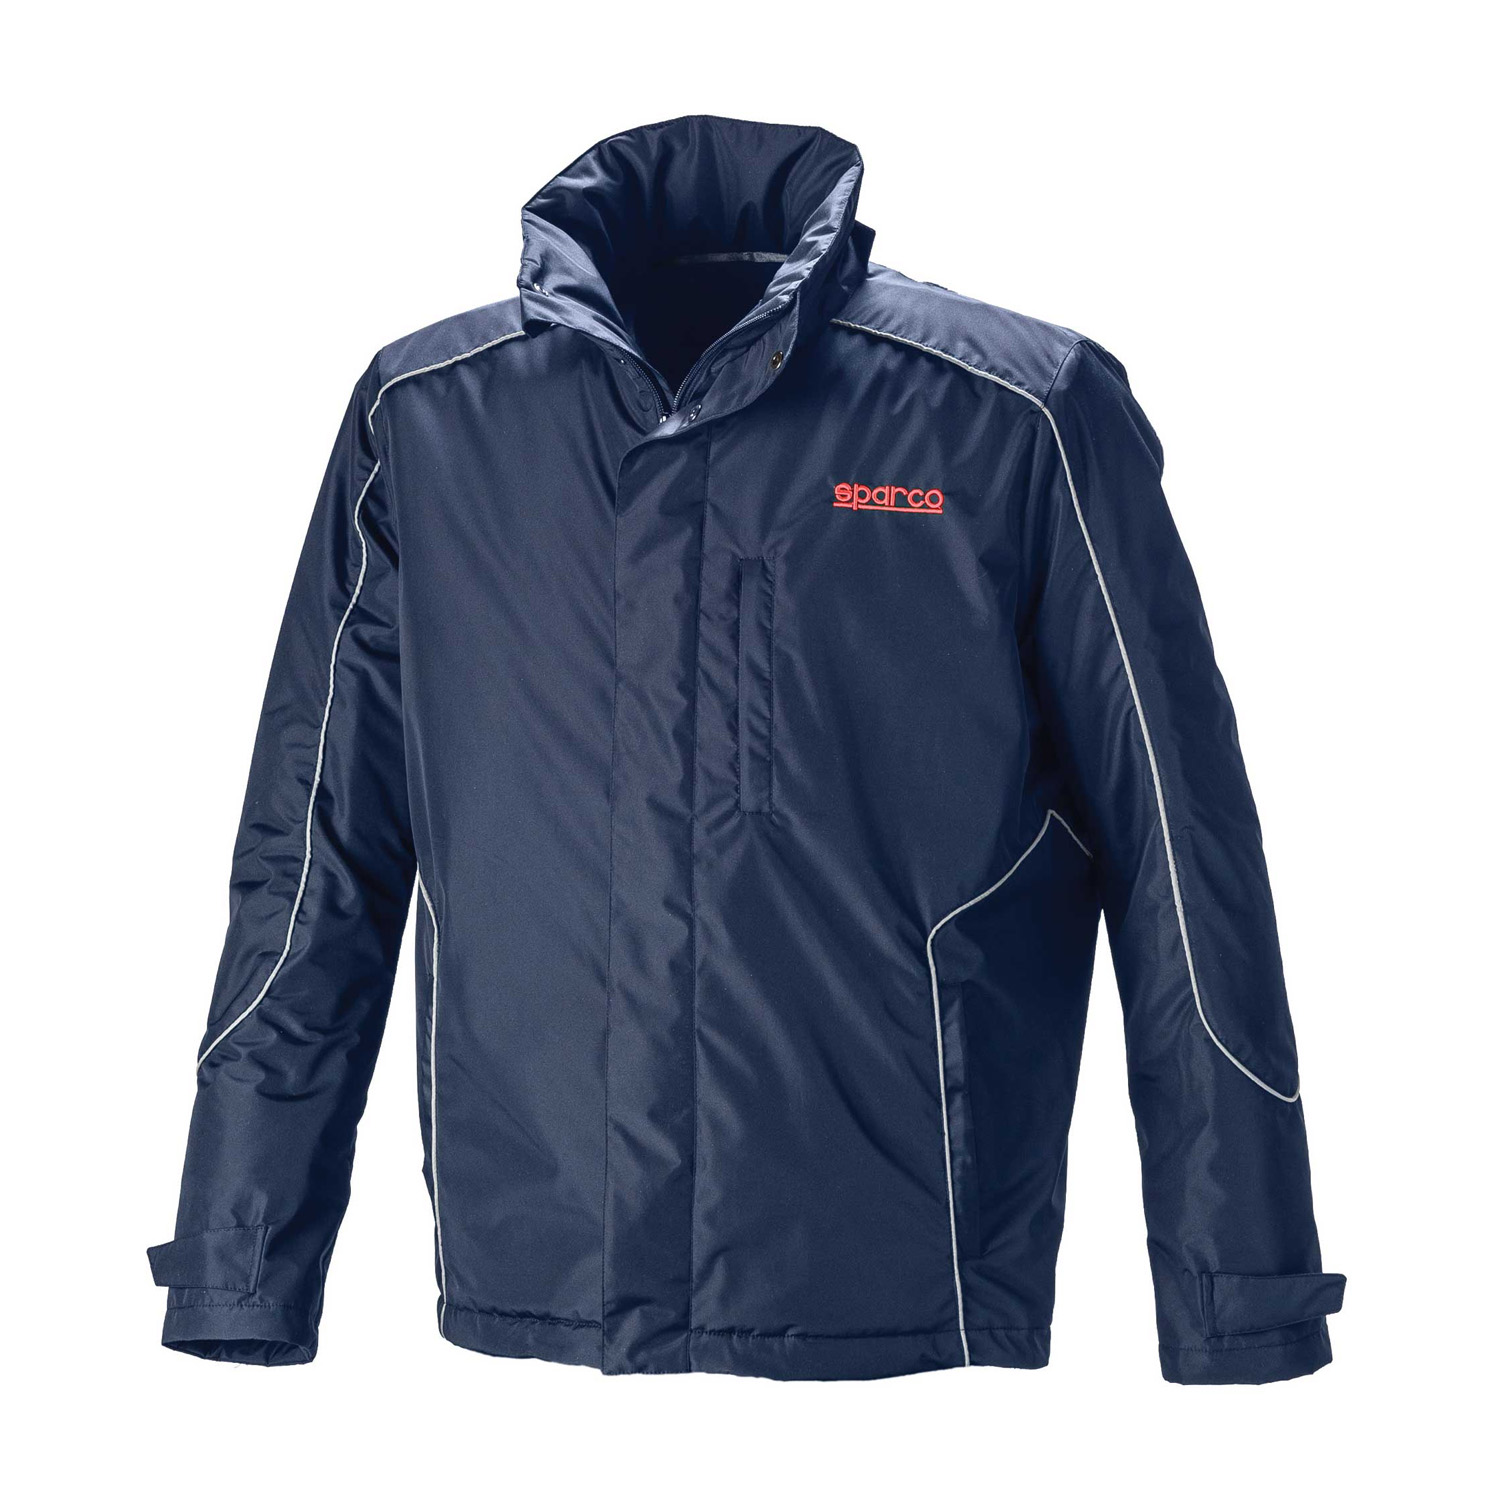 Sparco 2014 Winter Jacket